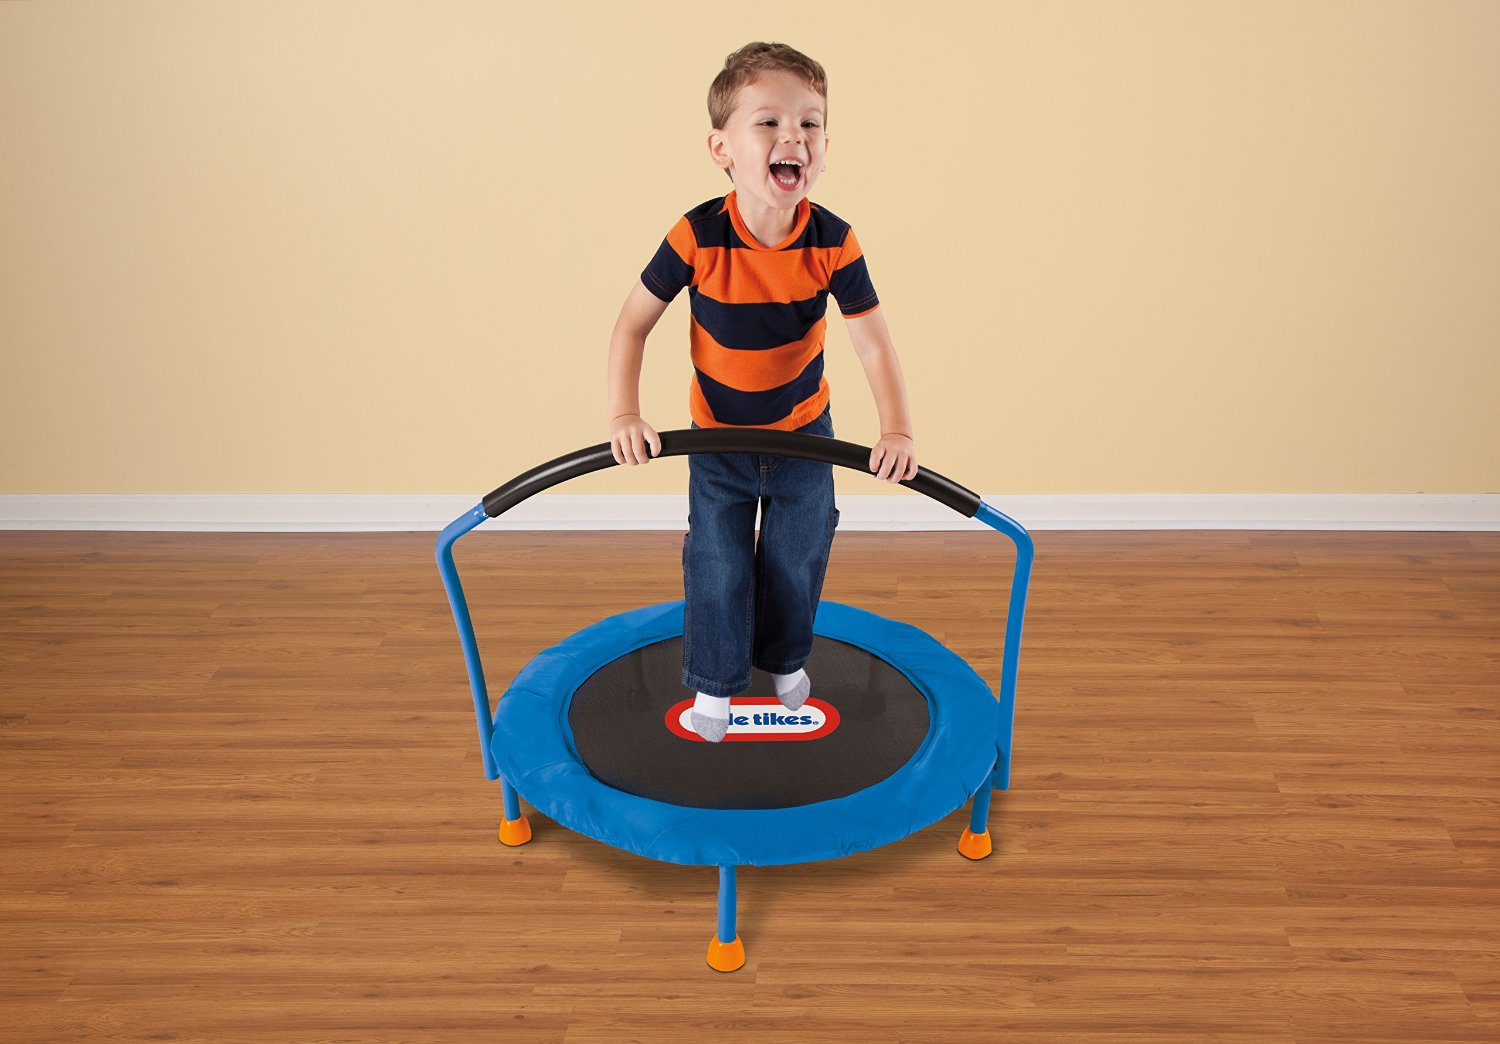 Toys For Boys 2 4 : Top toys for year old boys the absolute best